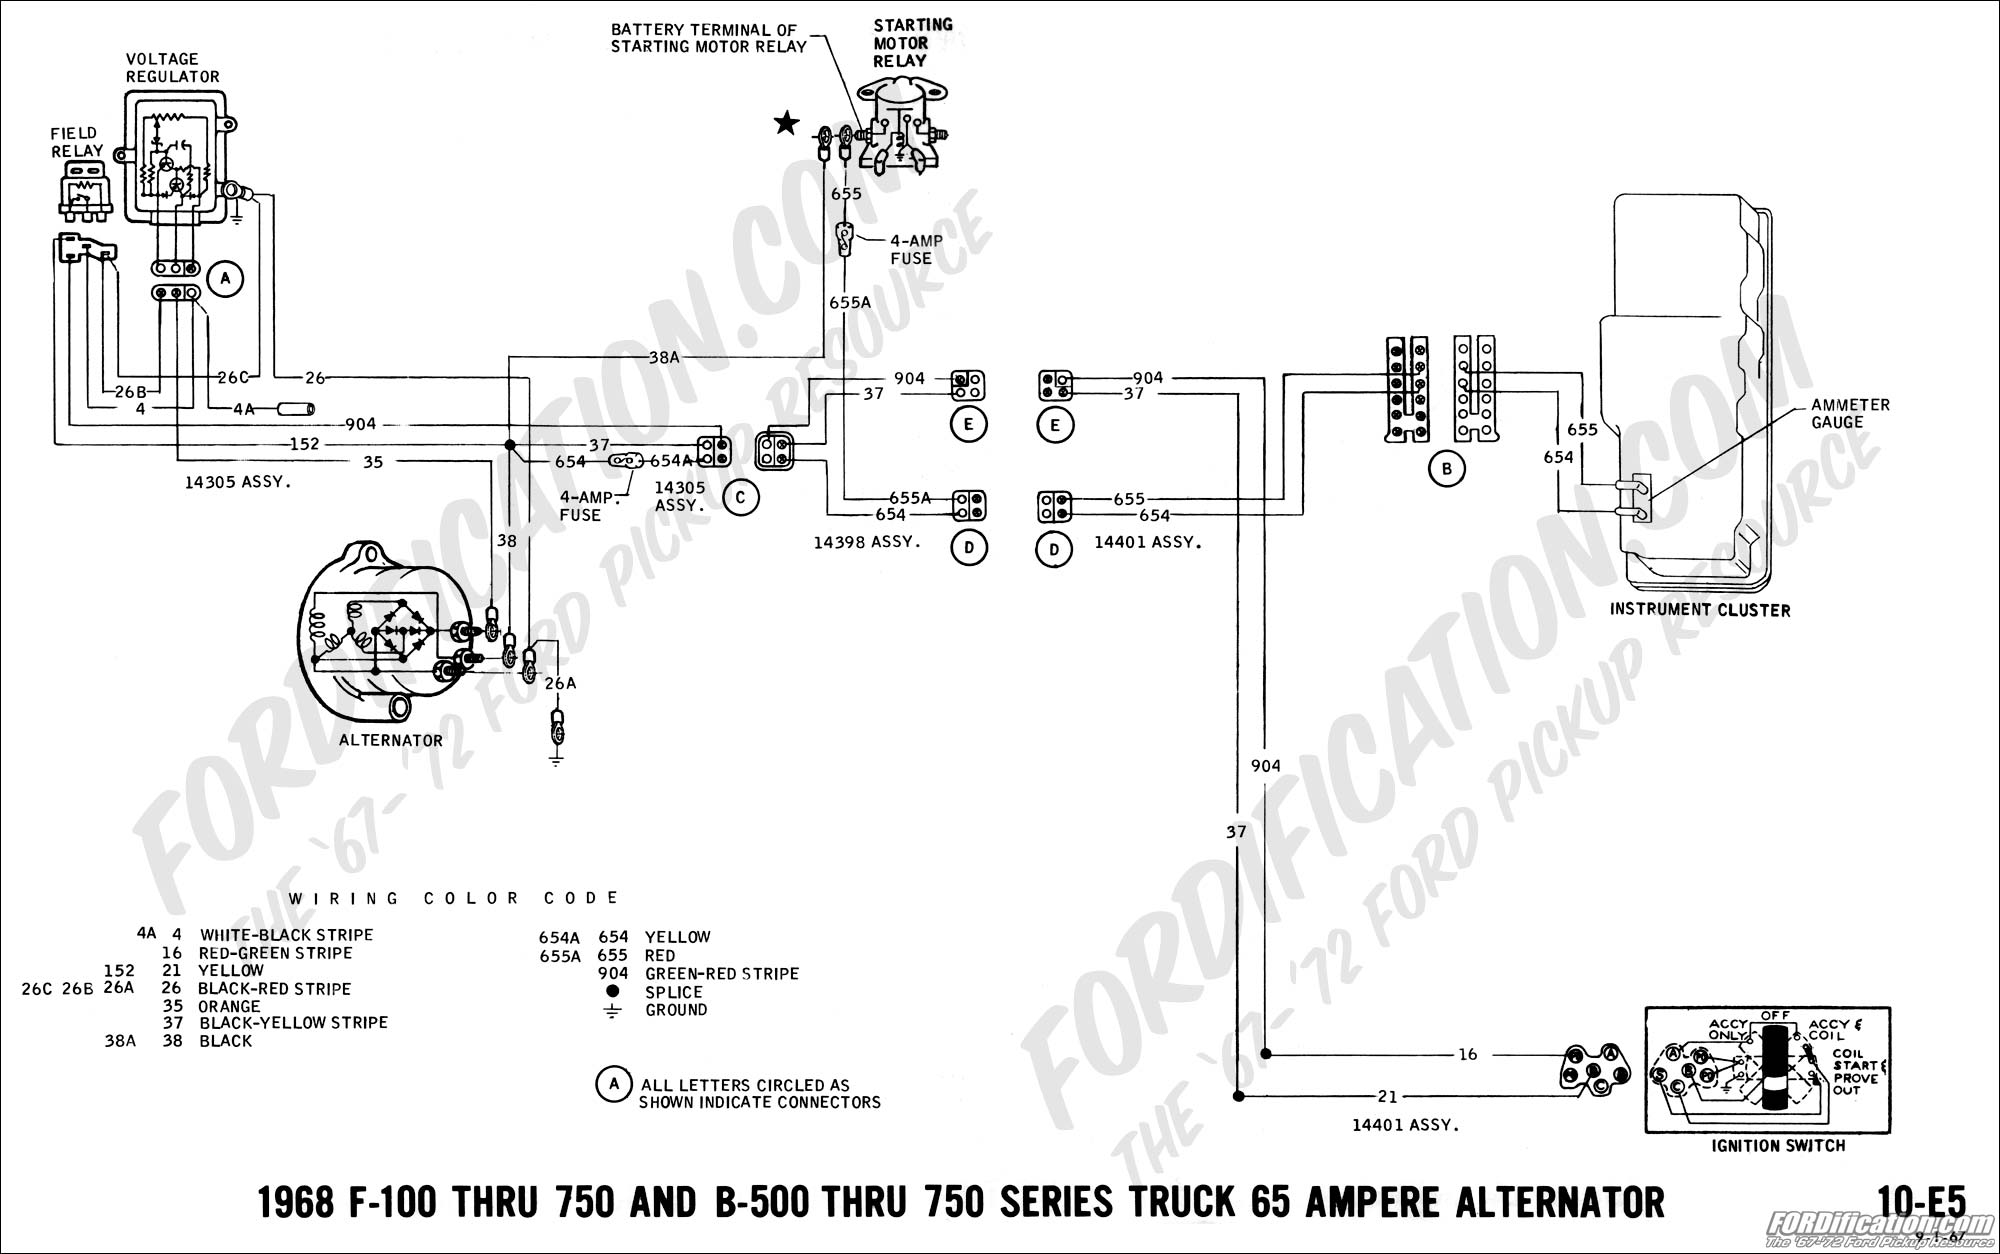 Ignition Wiring Diagram For International Sout